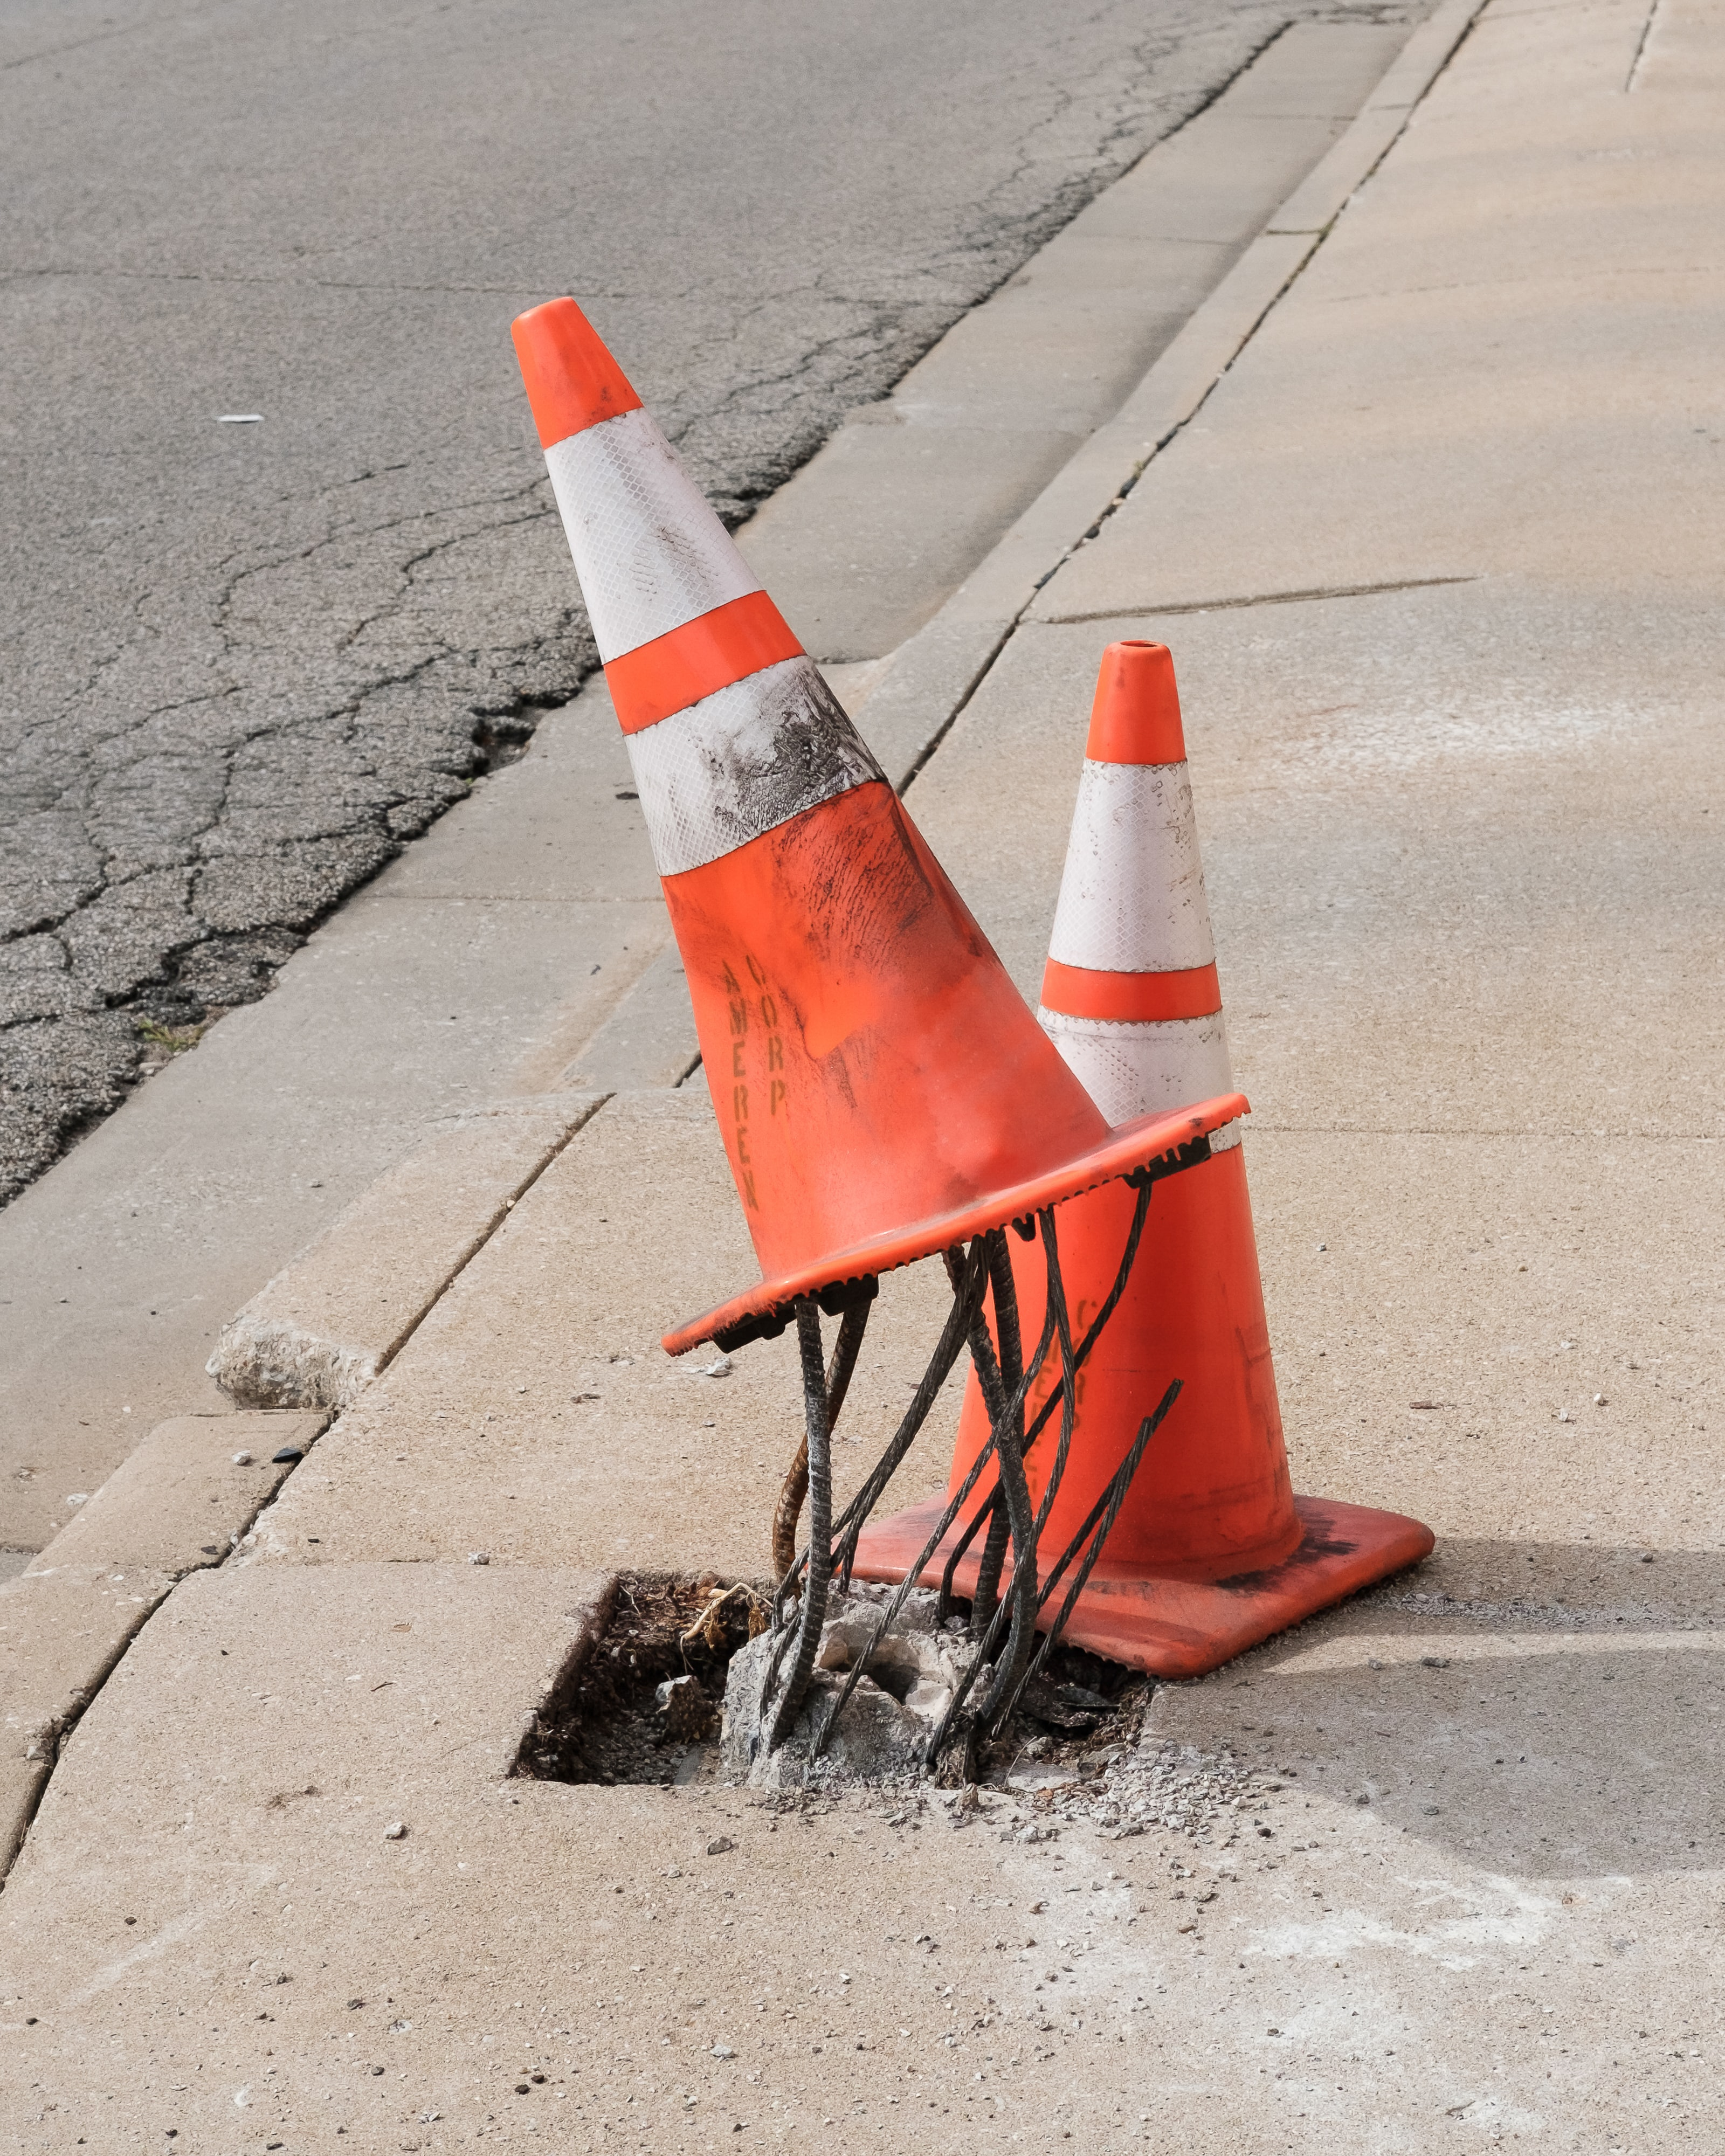 two traffic cones on gray road